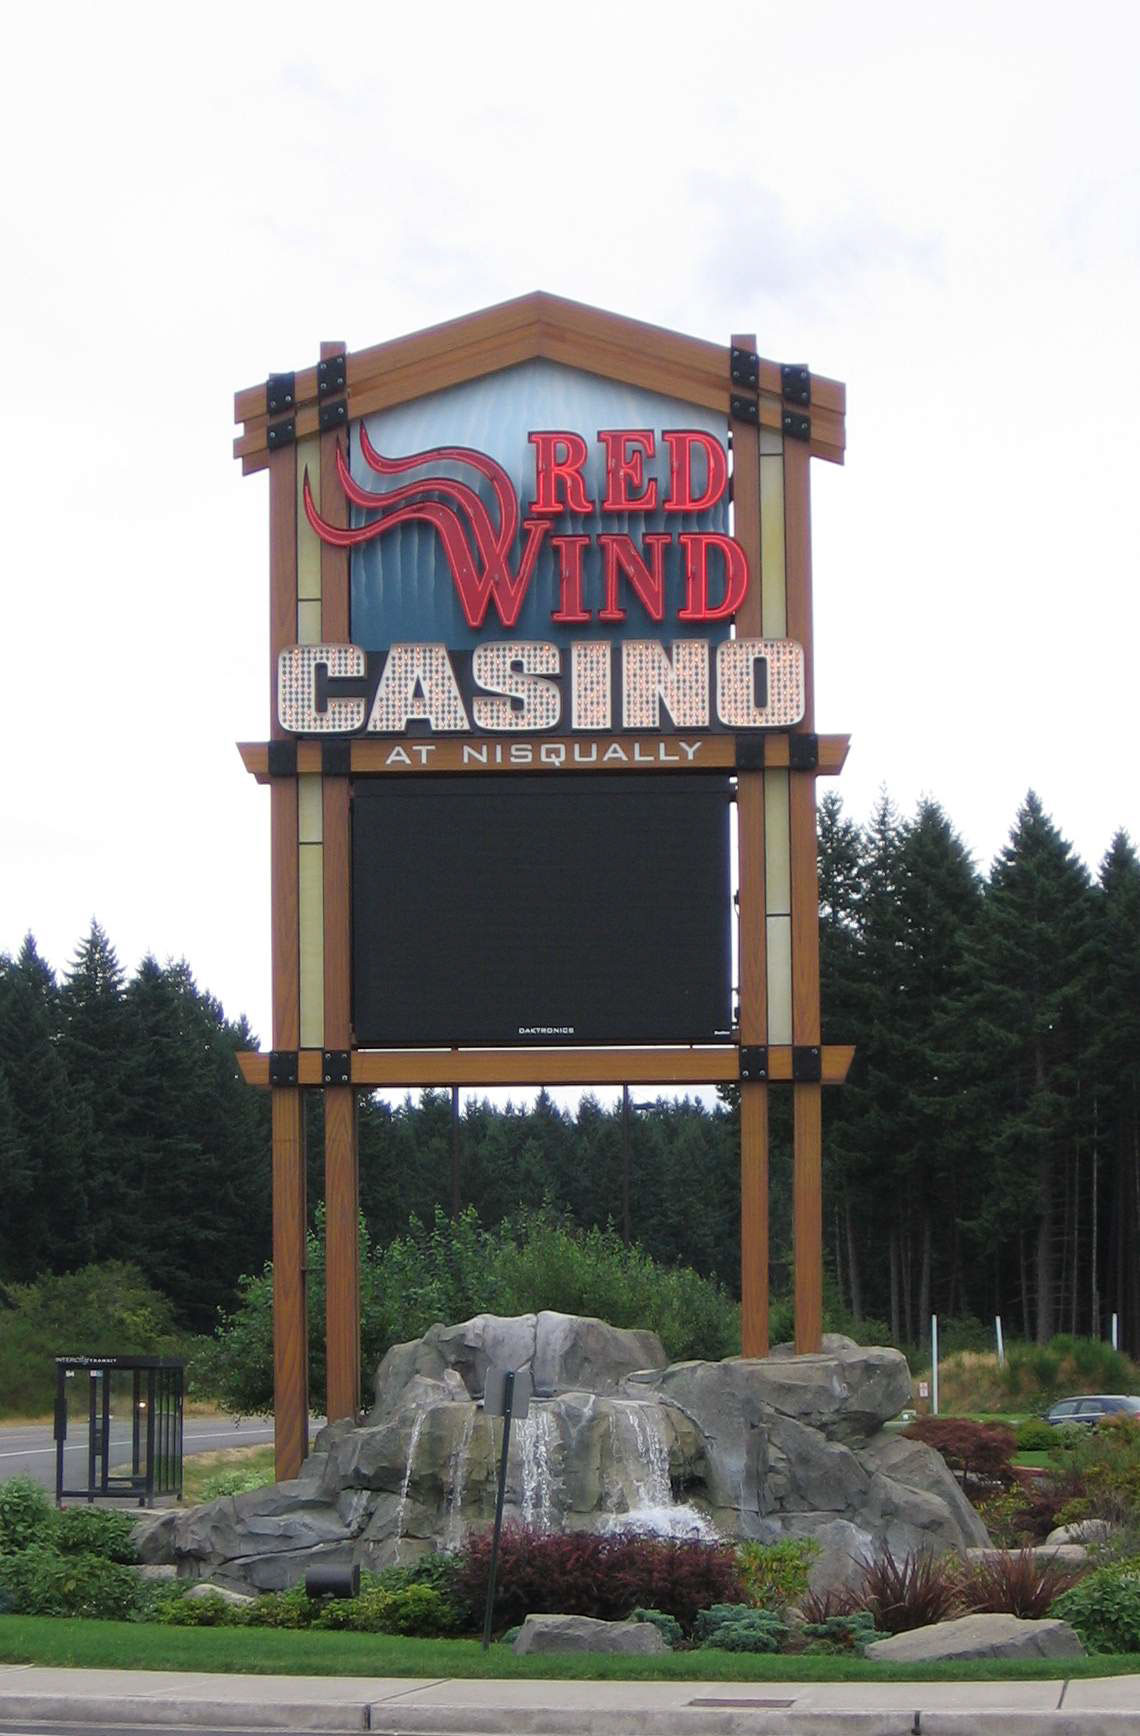 New casino south of olympia washington total gross gambling revenue casino called